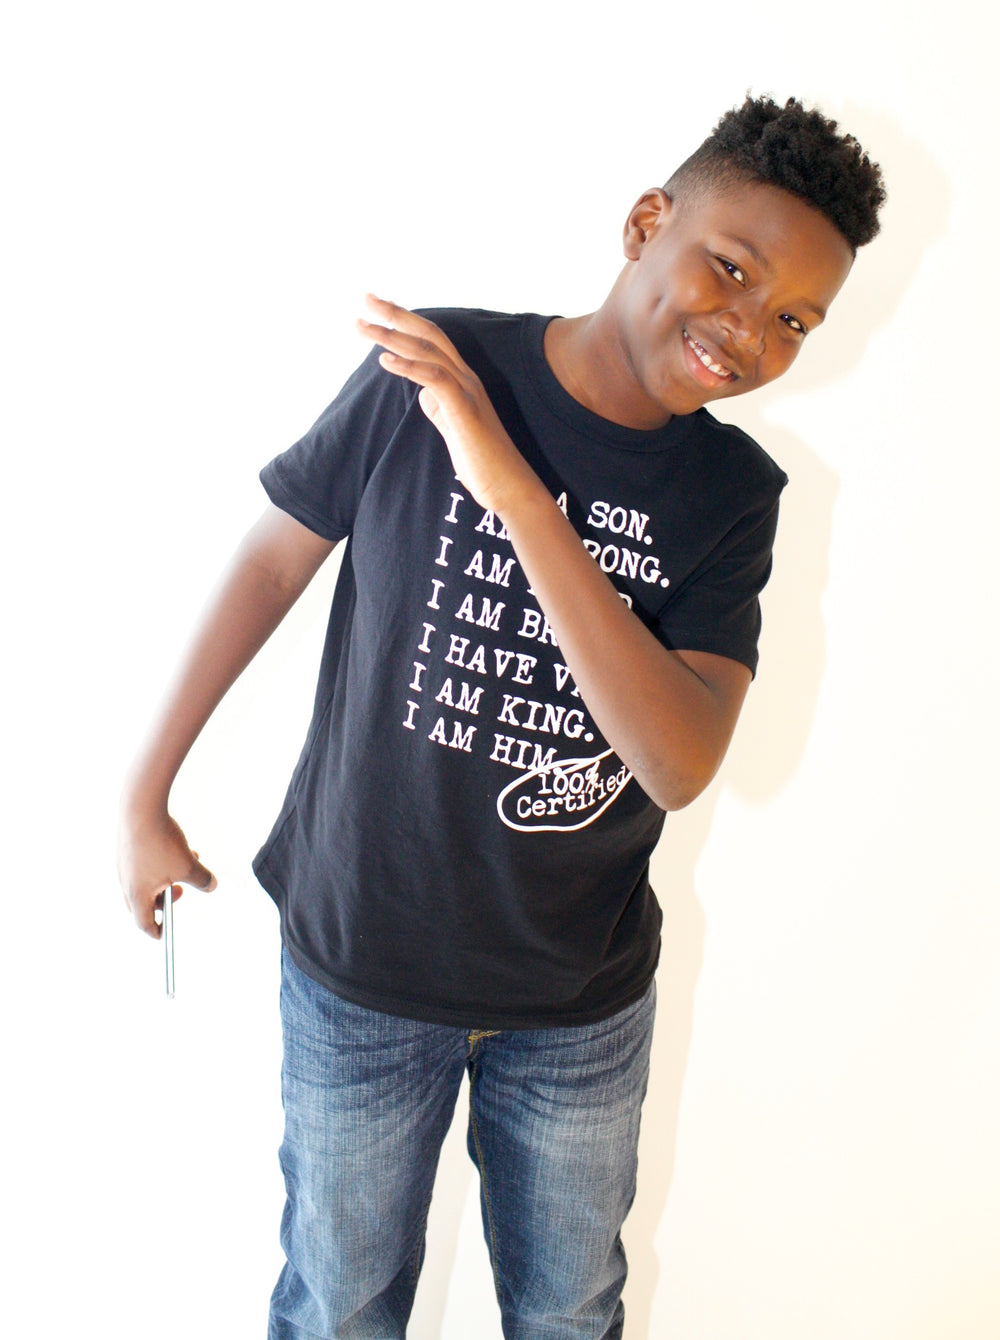 Boy wearing black graphic tee for boys with saying, I AM A SON. I AM STRONG. I AM LOVED. I AM STRONG. I AM BRAVE. I AM VALUED. I AM KING. I AM HIM -­‐ 100% CERTIFIED. Boys clothing for him because it is never too early or too late for him to know his value and worth.